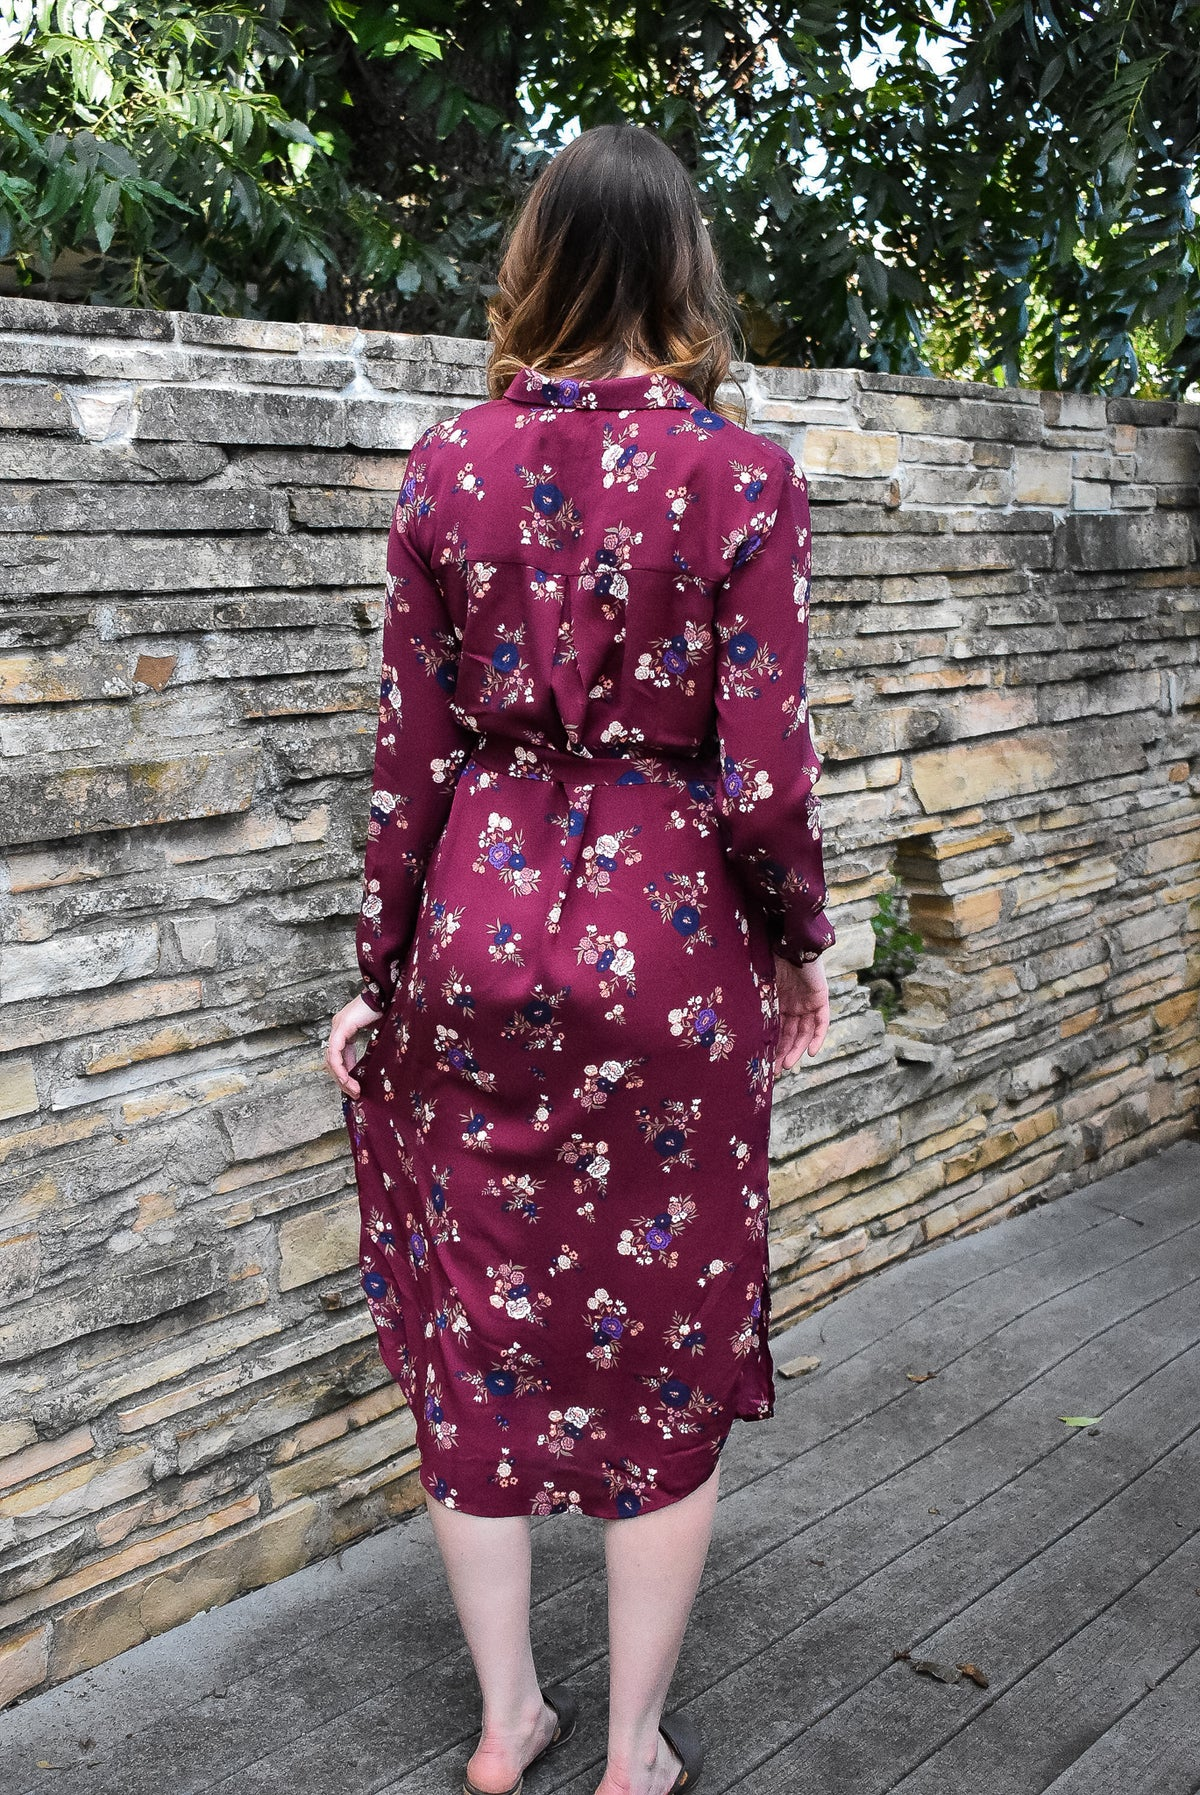 FLORAL BUTTON-UP MIDI DRESS - BURGUNDY